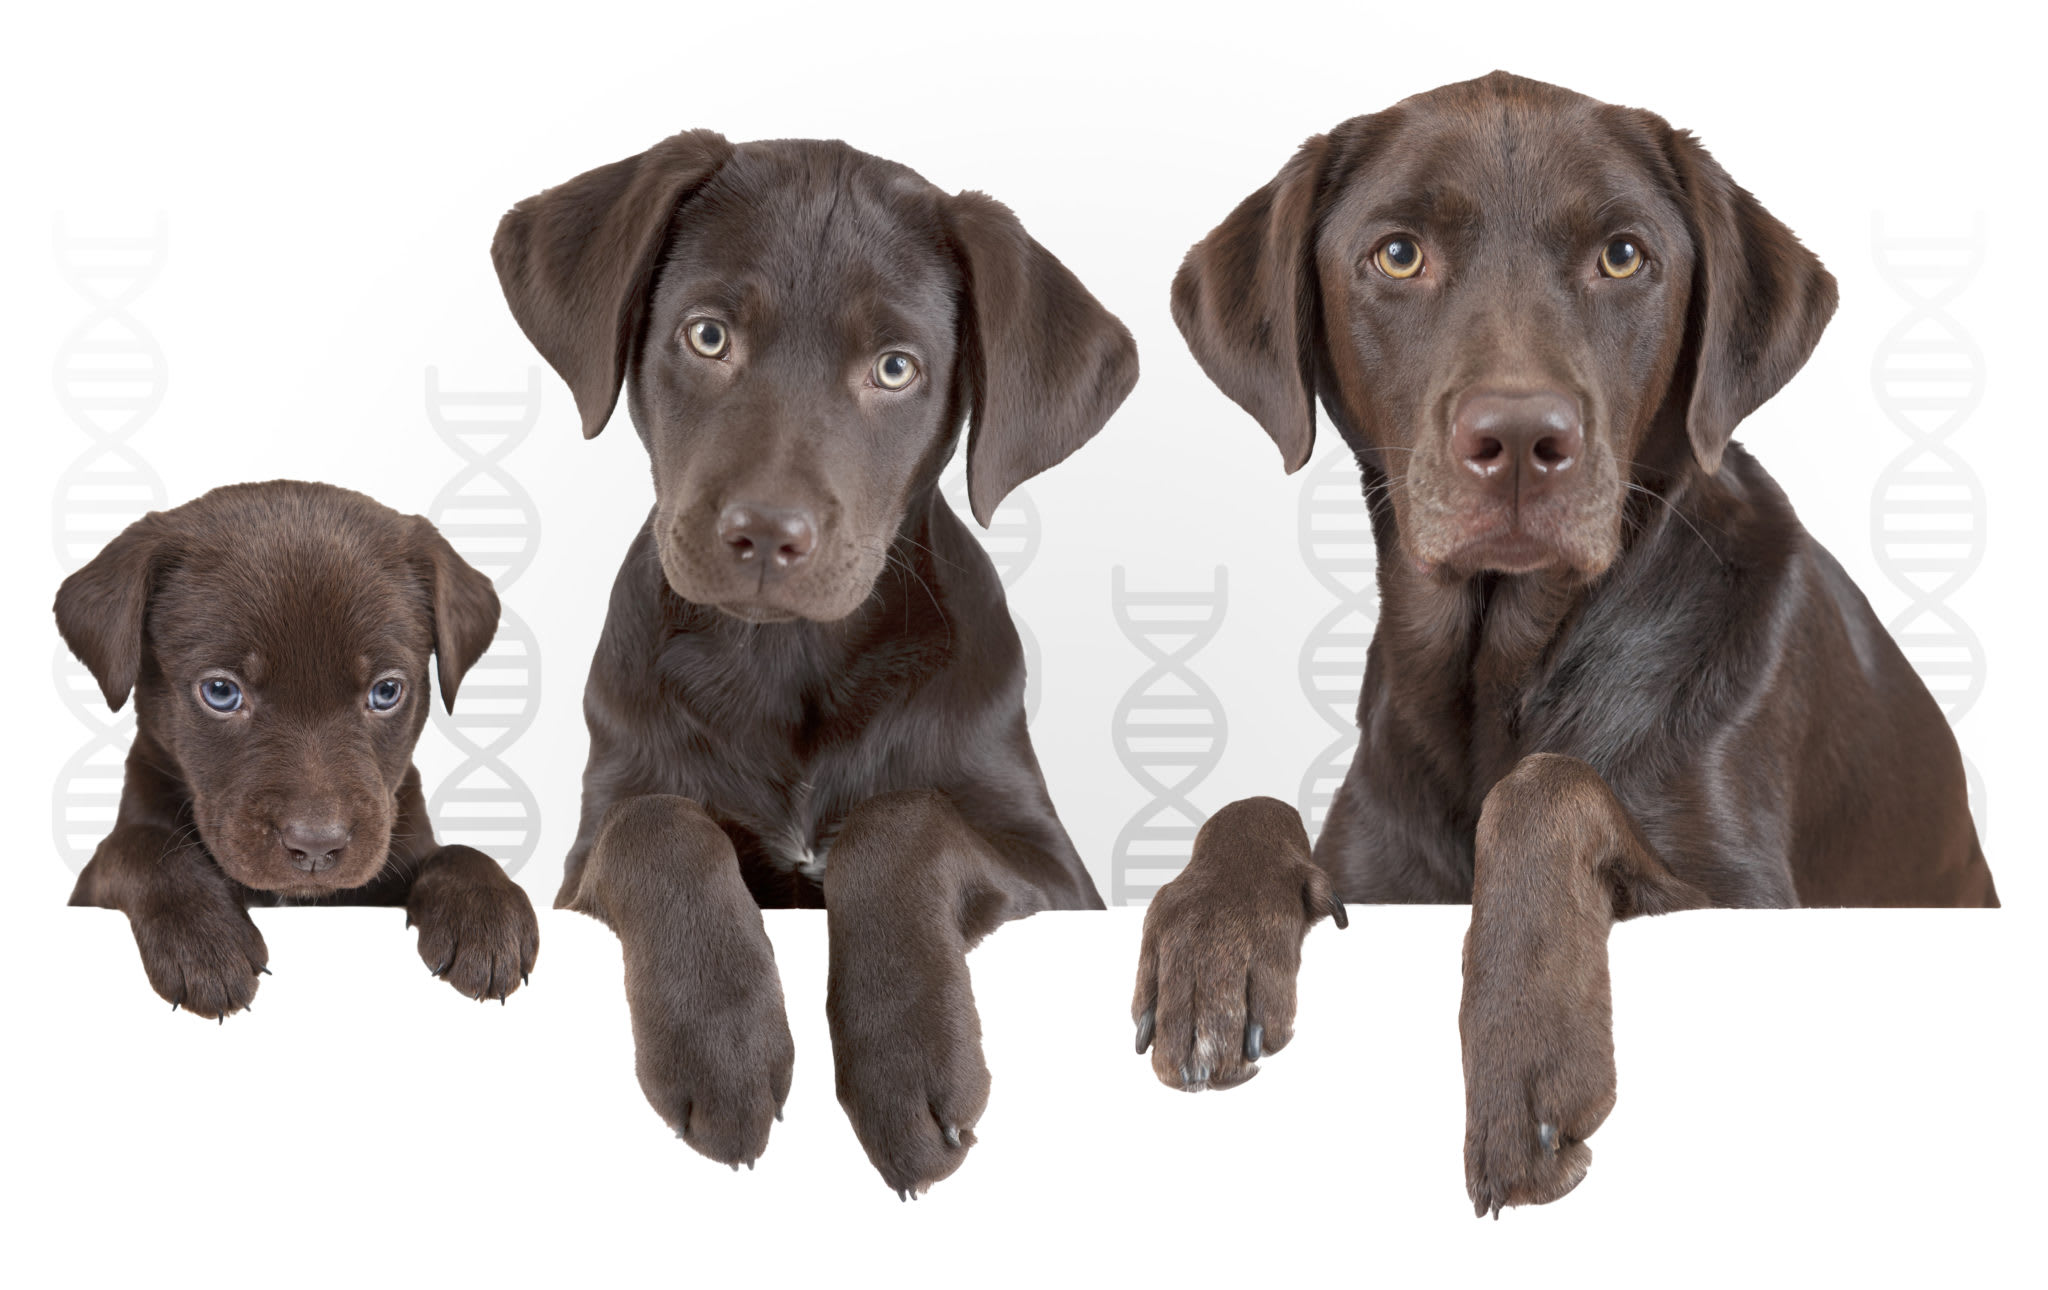 Labrador puppy, young Labrador, and adult Labrador life stages